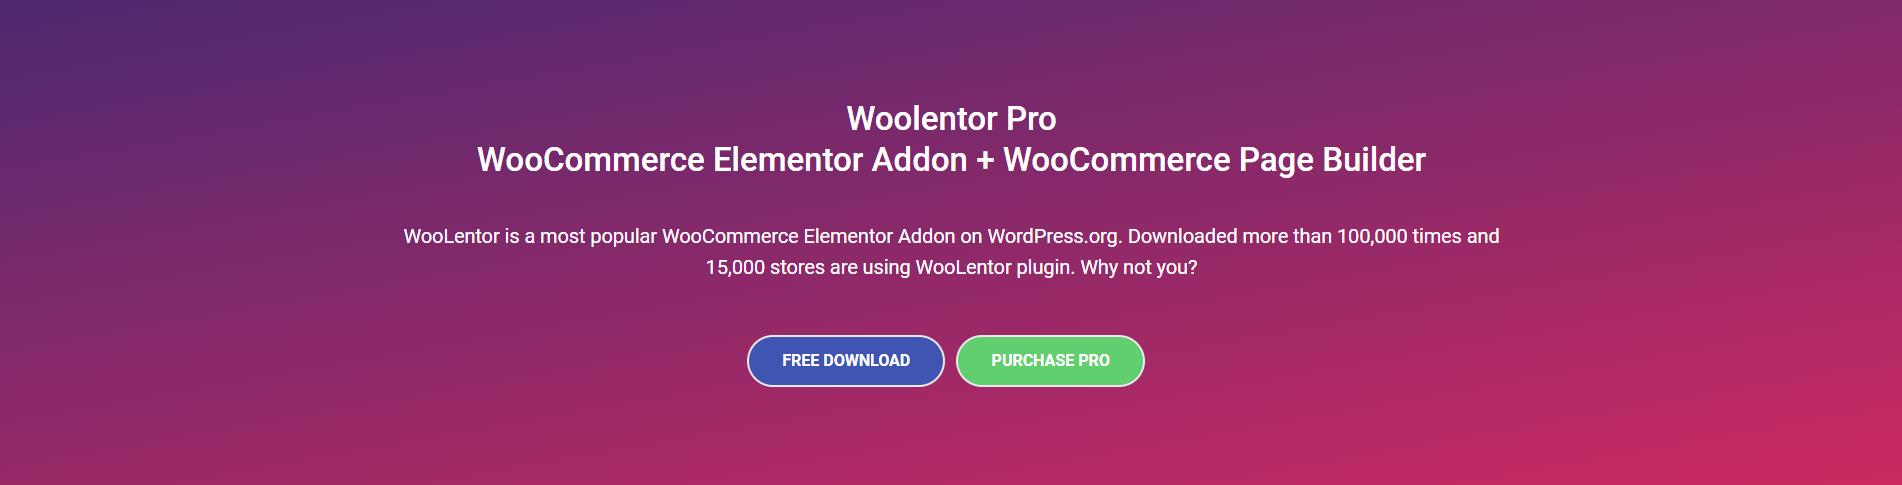 elementor woocommerce add-ons 5